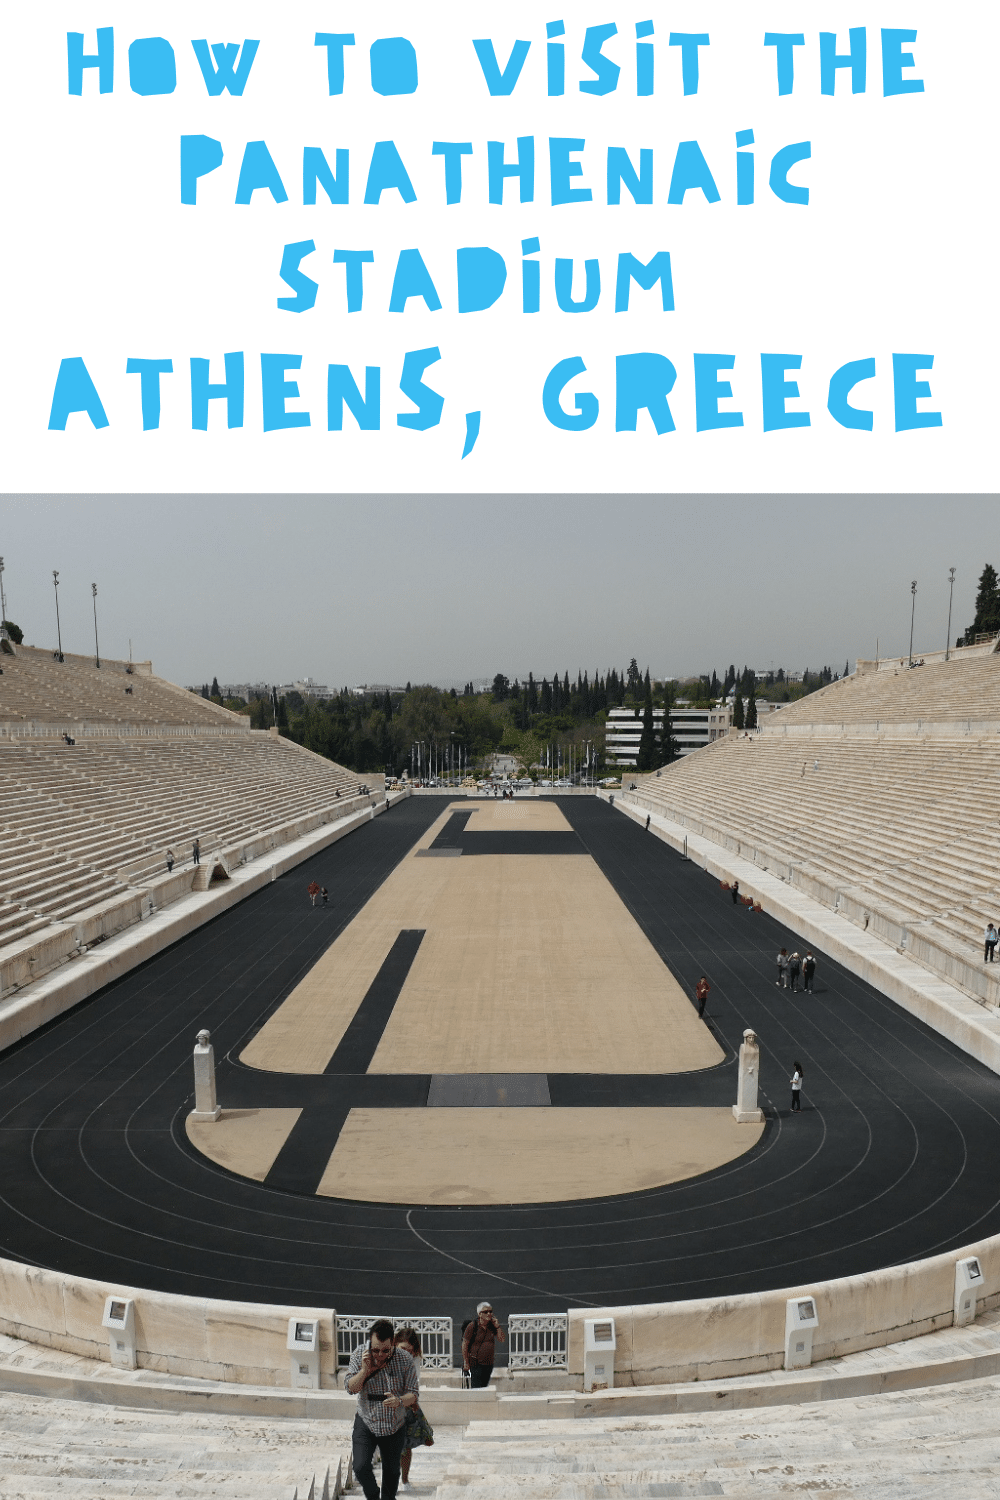 A simple guide to help you plan a visit to the Panathenaic Stadium in Athens, including tickets, opening times and things you can do.